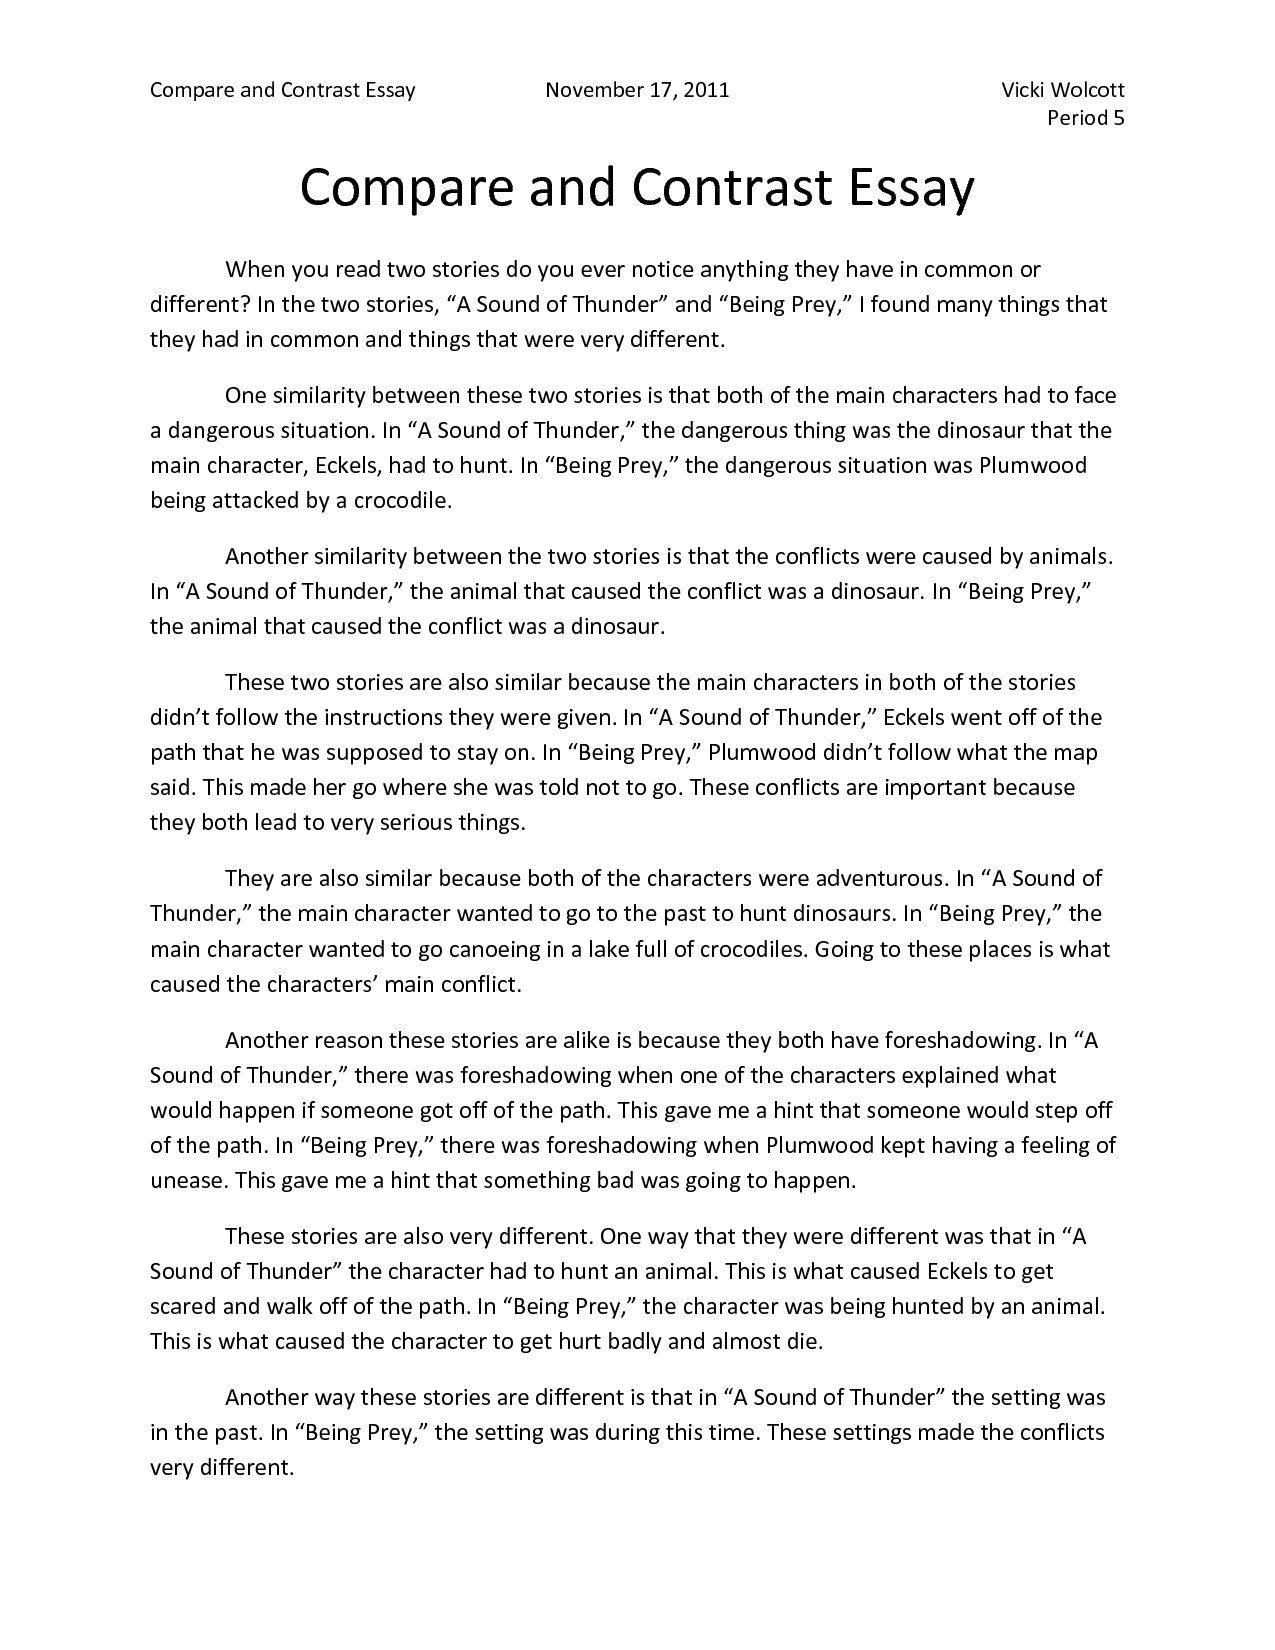 003 Perfect Essays Compare And Contrast Essay Introduction Example How To Write College Striking Examples Elementary Fourth Grade For Students Full